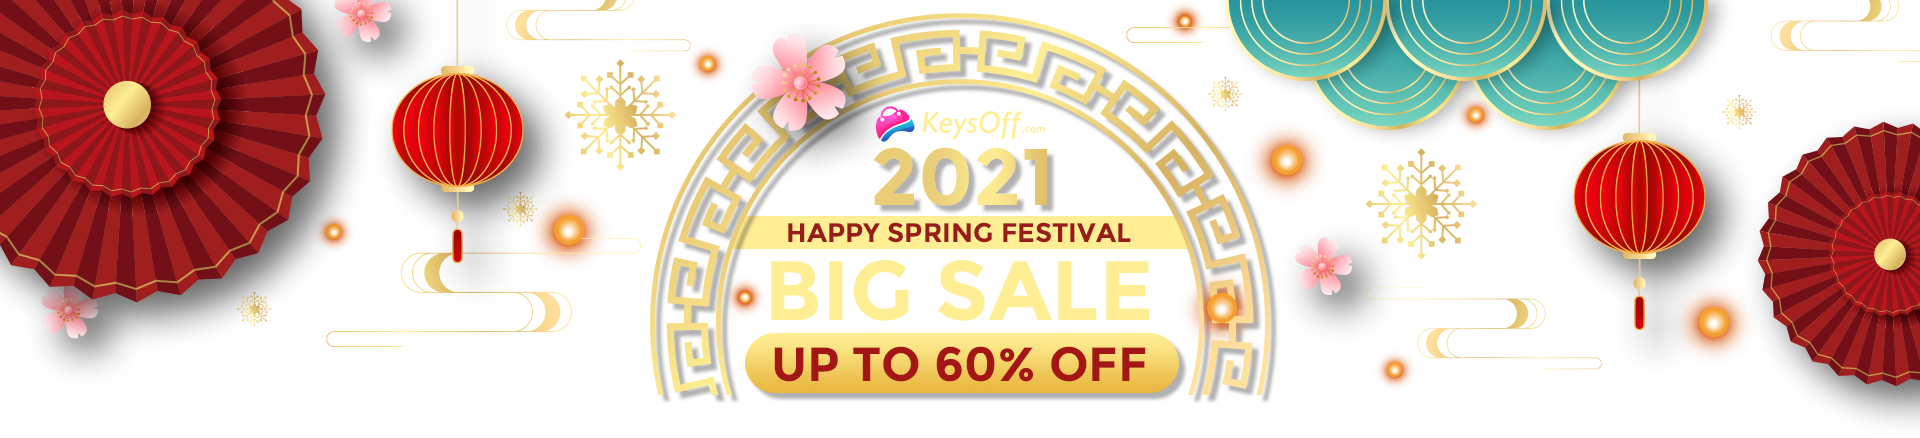 happy spring festival big sale 2021